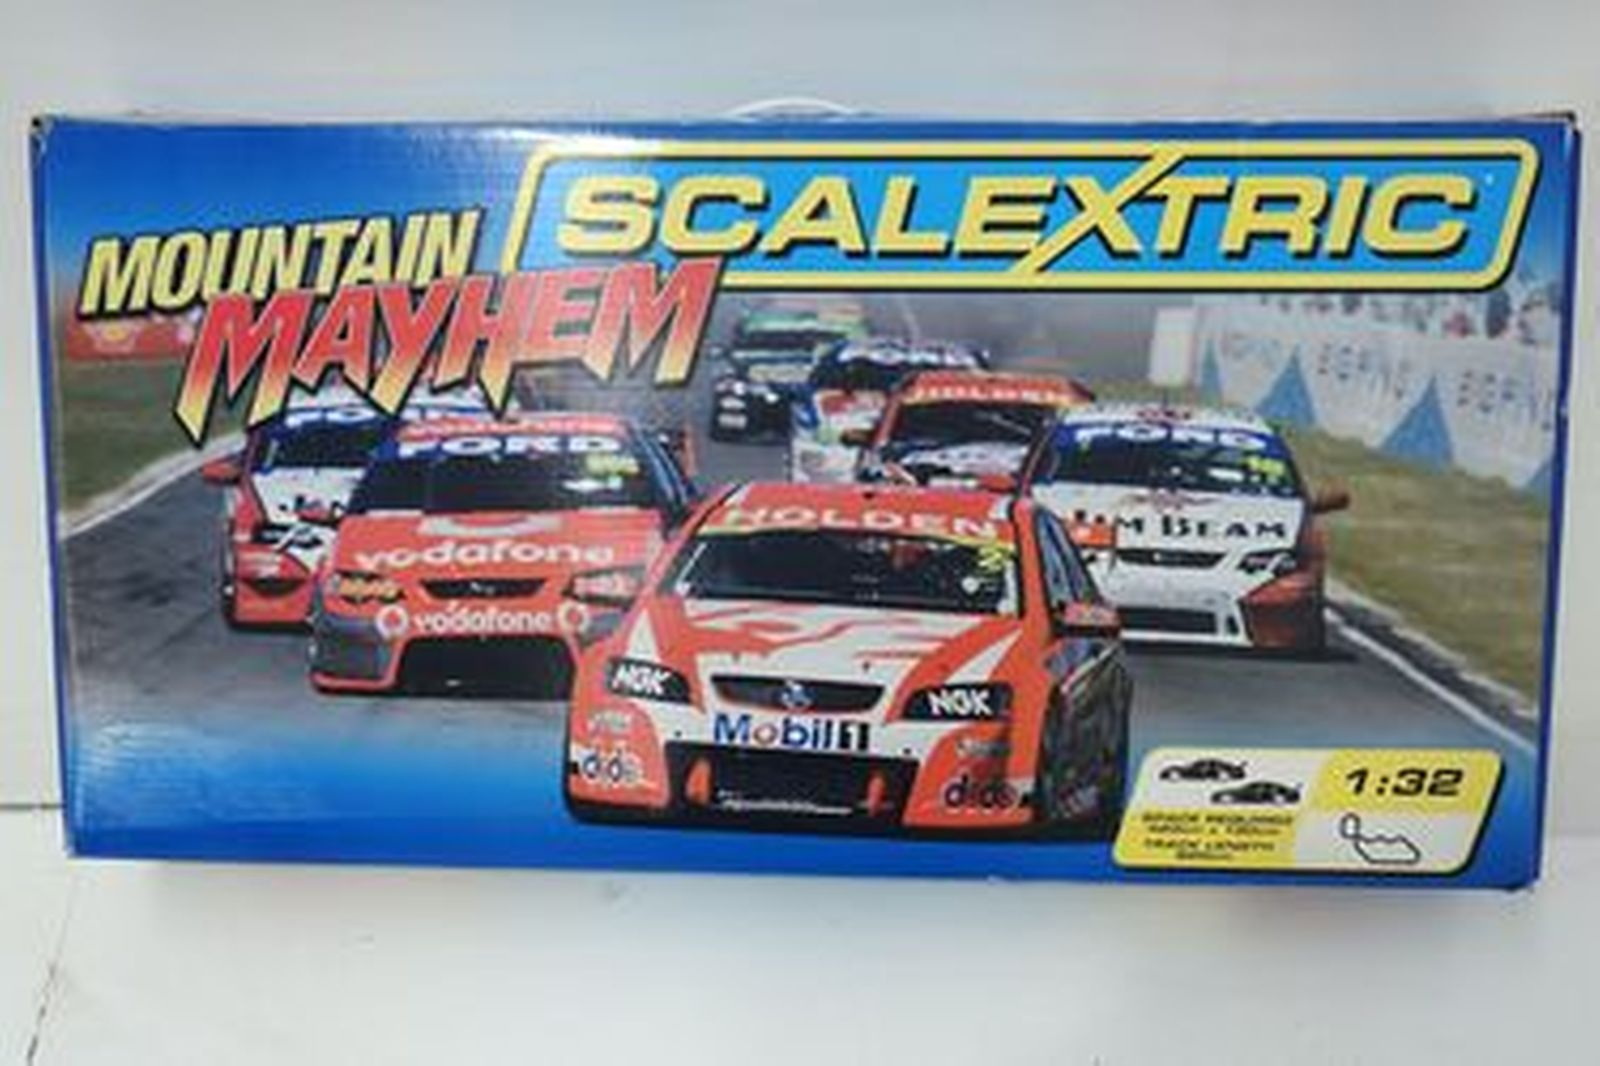 Scalextric Slot Car Set - Bathurst 'Mountain Mayhem' Craig Lowndes vs Mark Skaife